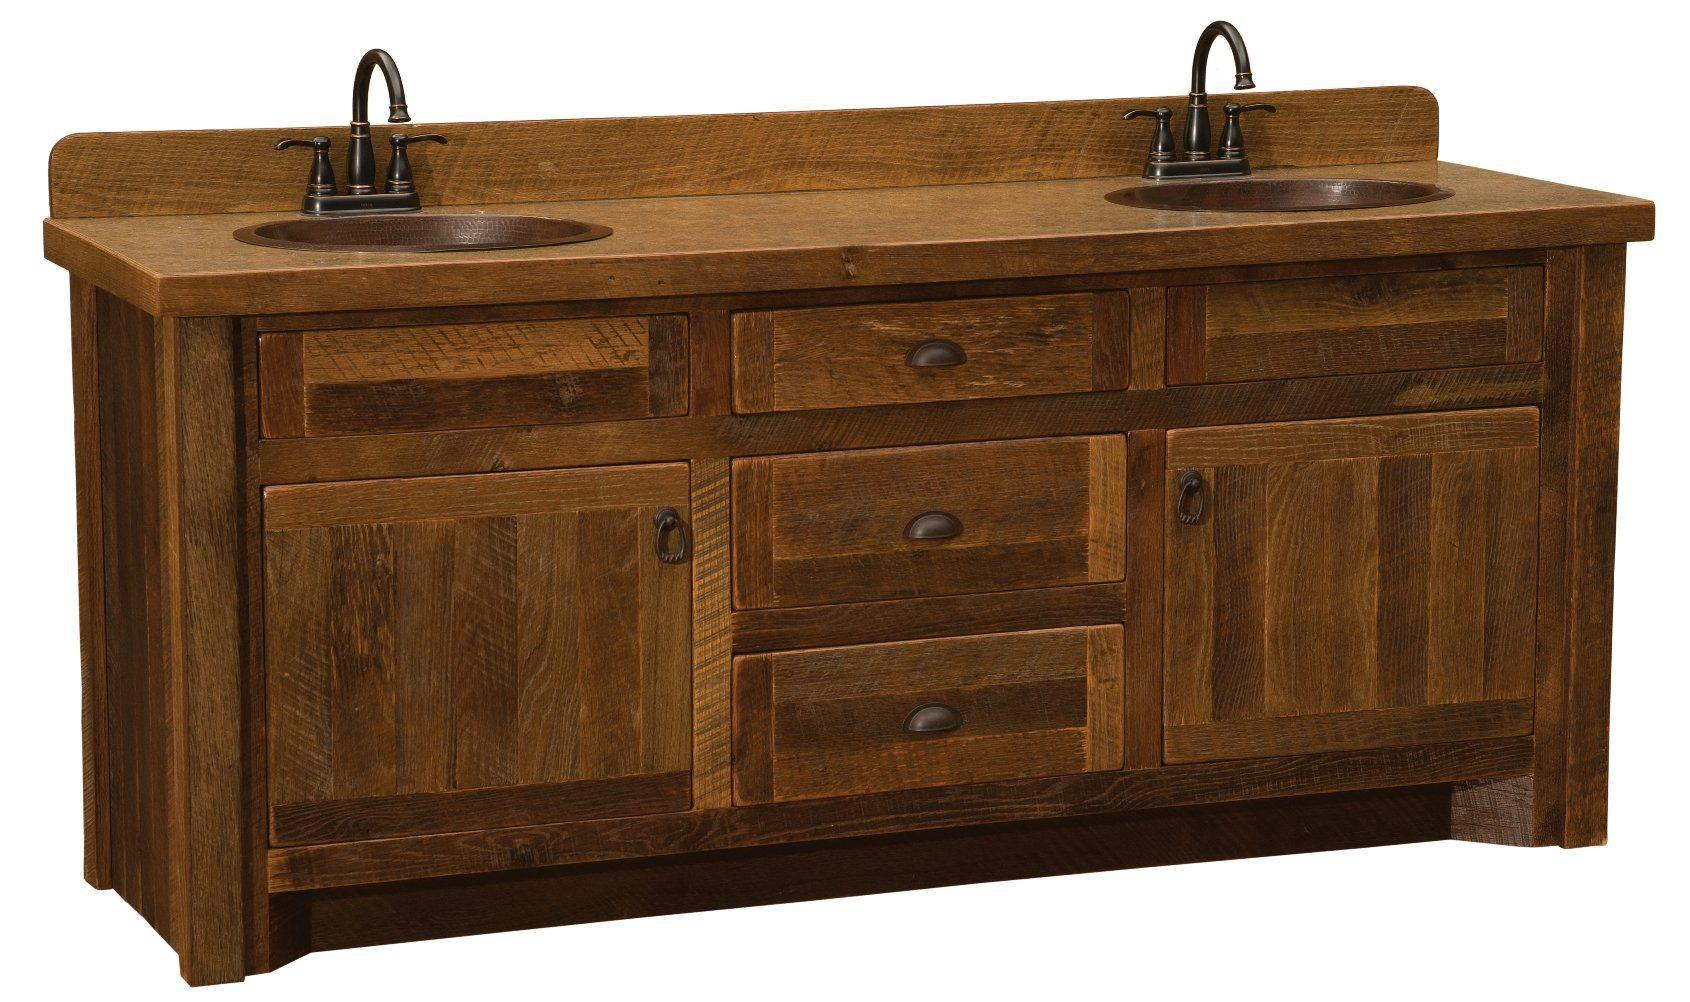 Hickory Log Vanity - 36, 42, 48 Inch without Top - Sink Left